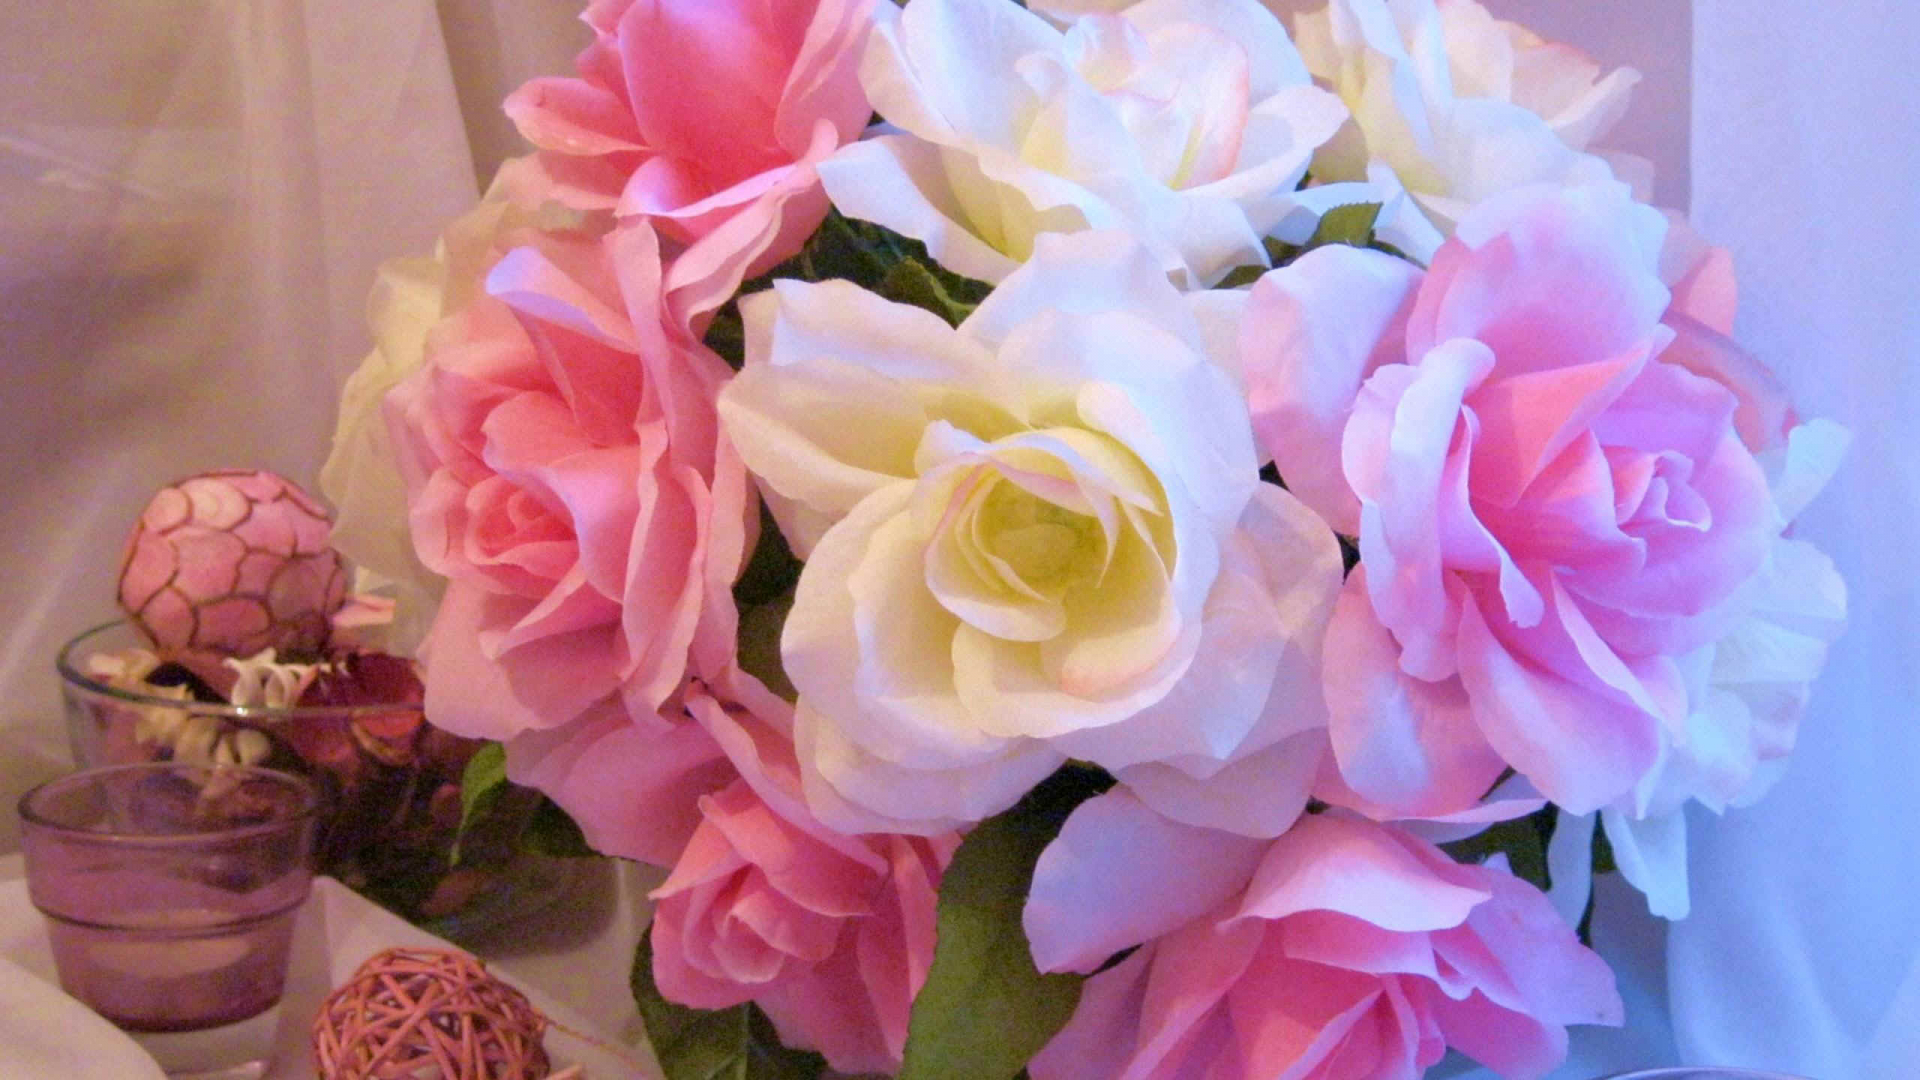 Free Download 0357 Pink And White Roses W 2560x1600jpg 411499